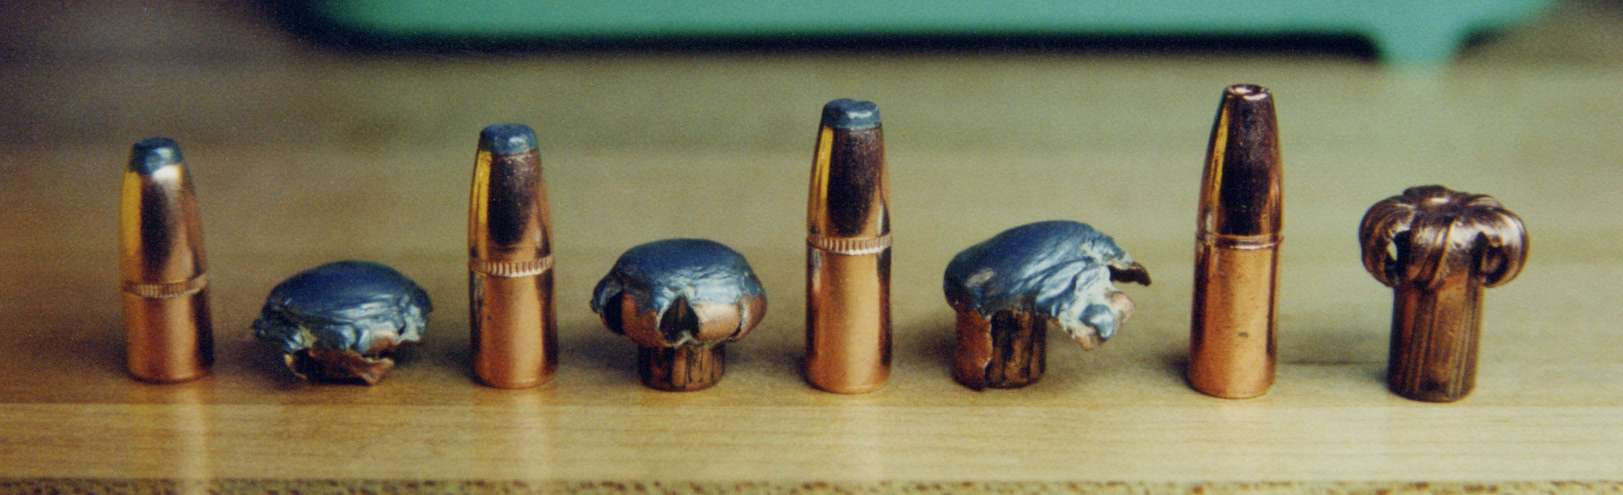 legend    l r  tested  unfired and recovered   348 caliber bullets   1